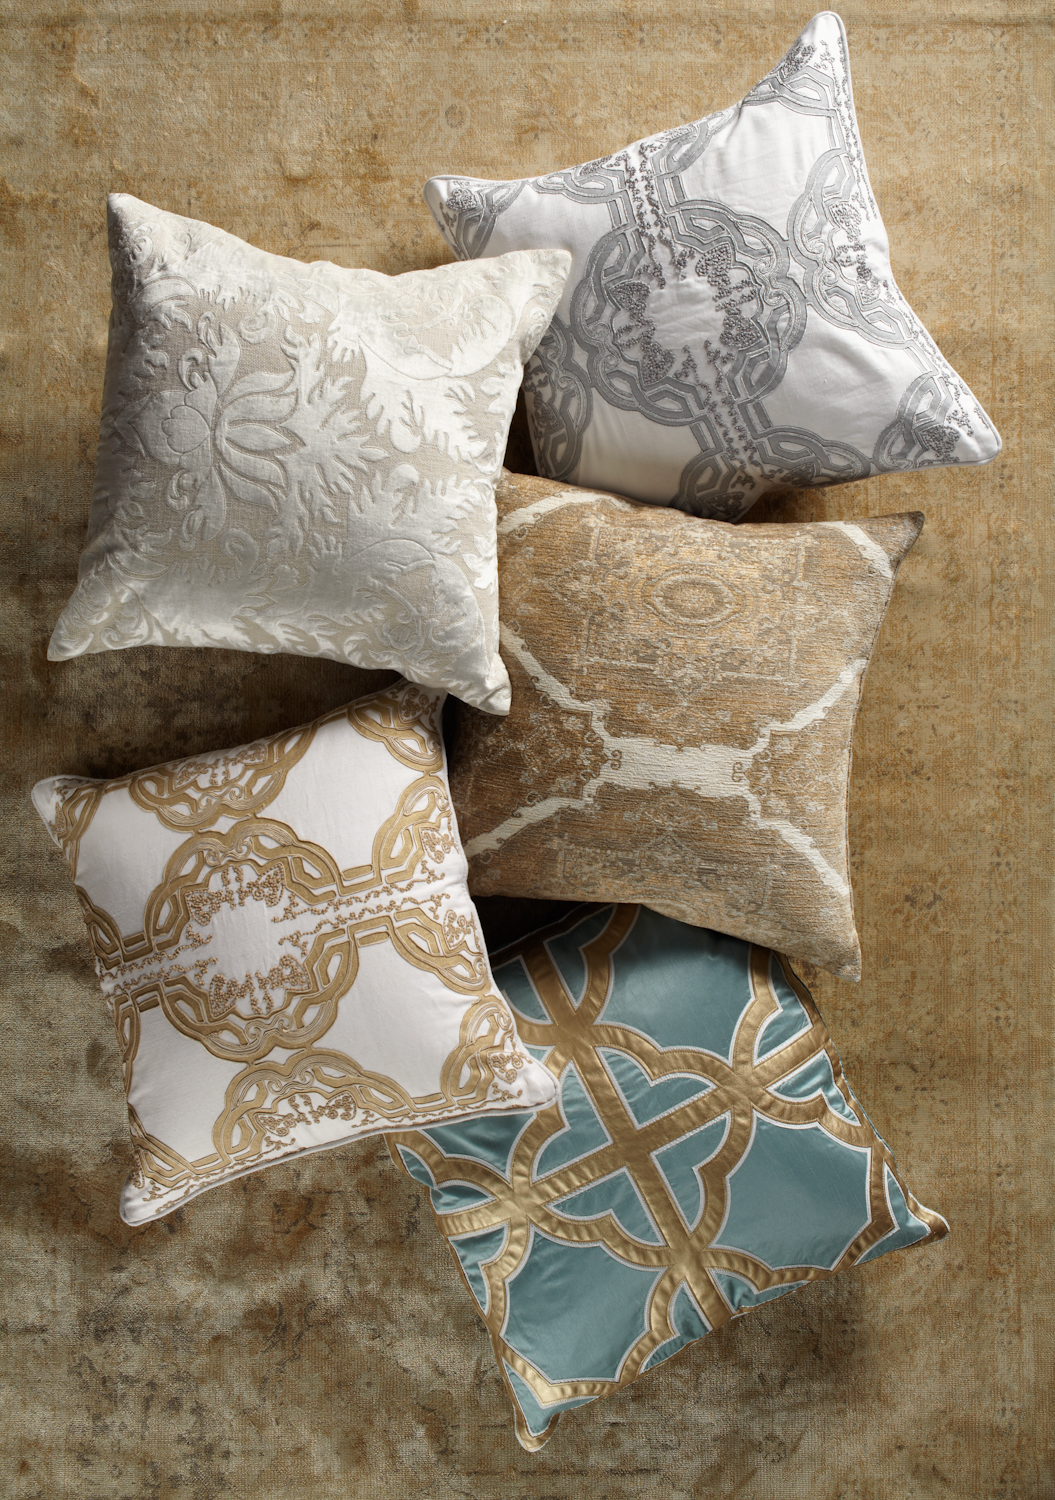 Update Your Space With Elegant Upscale Throw Pillows Calmly